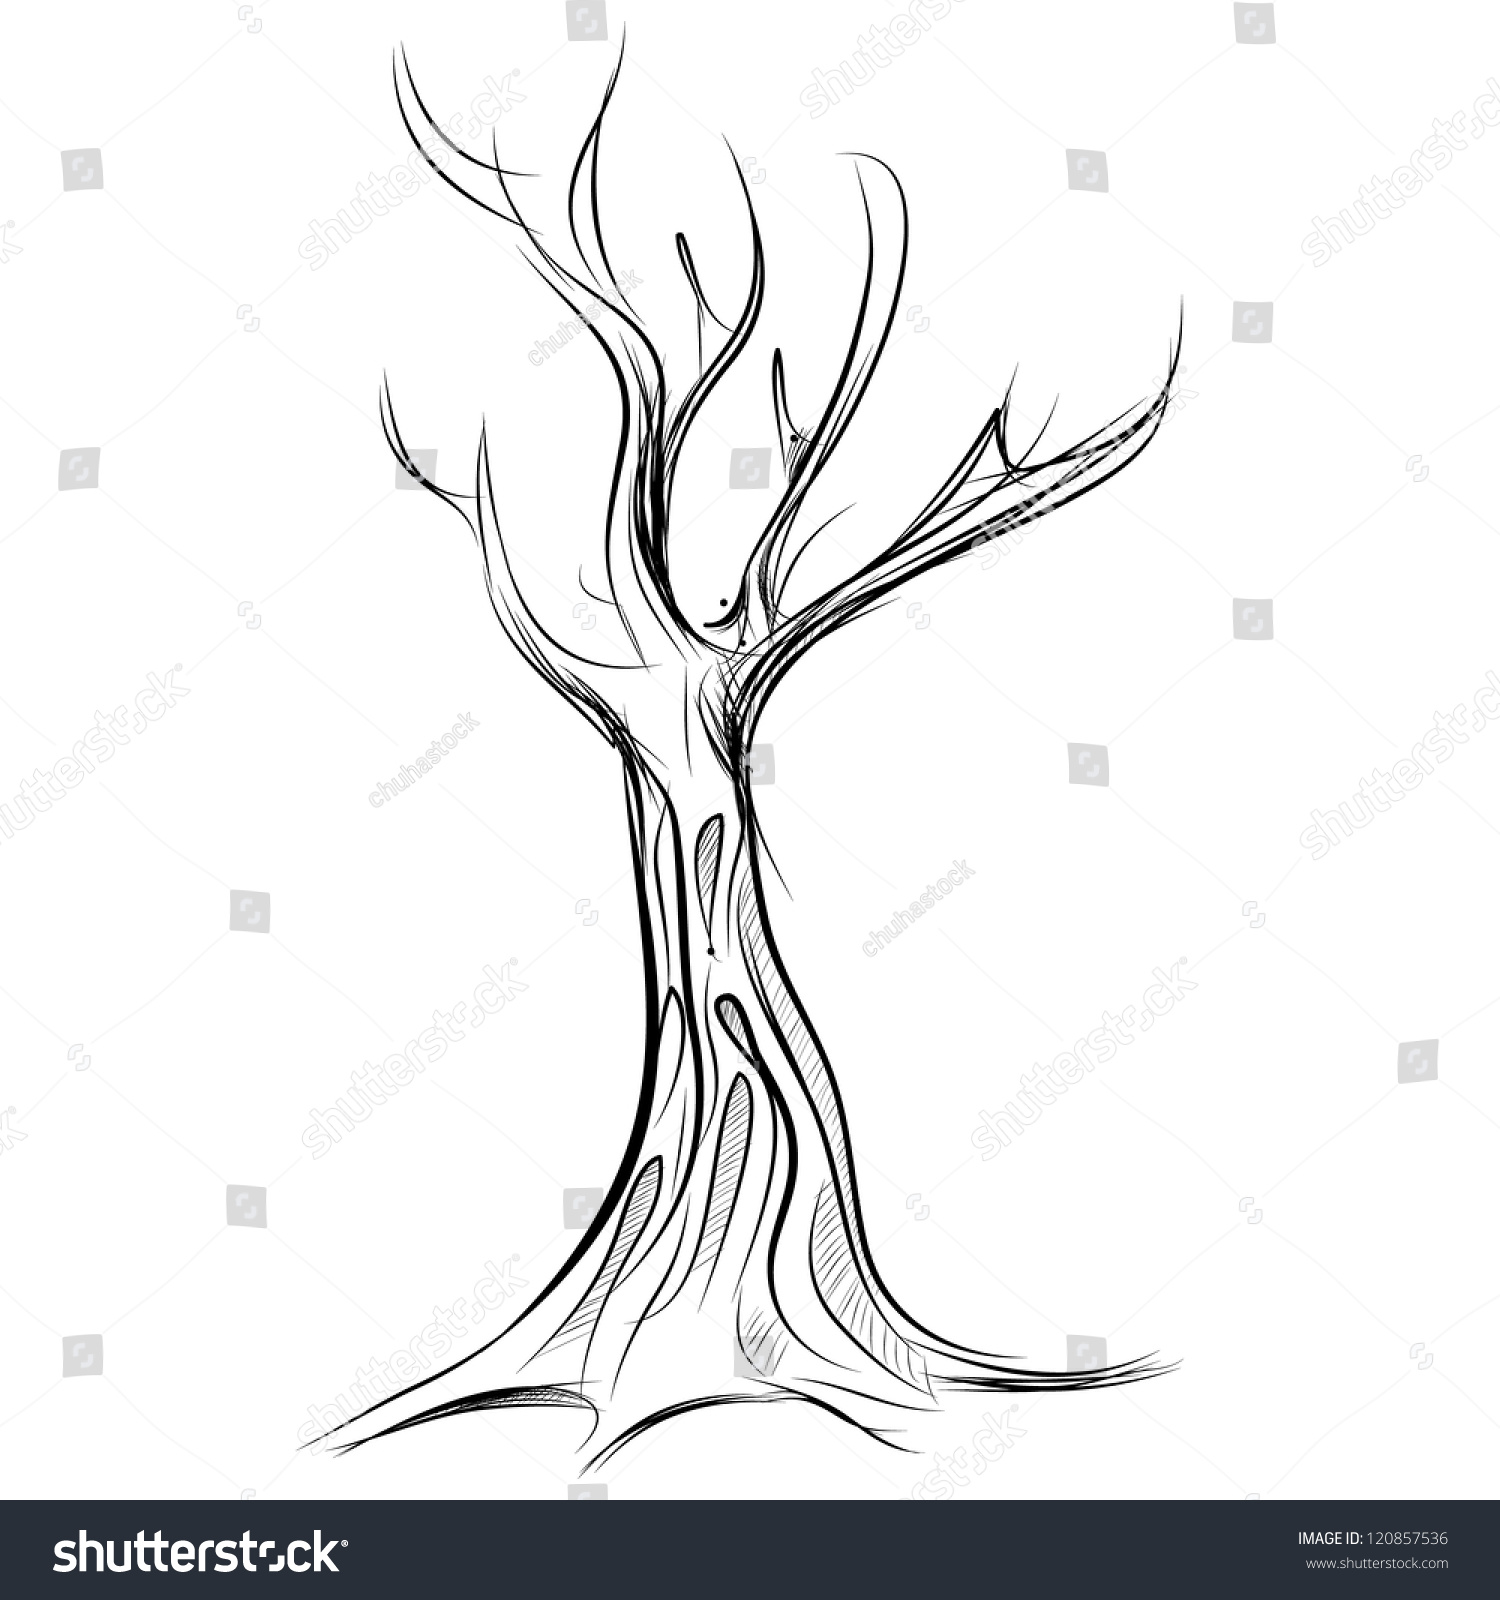 Tree Cartoon Icon. Sketch Fast Pencil Hand Drawing Illustration - 120857536  Shutterstock